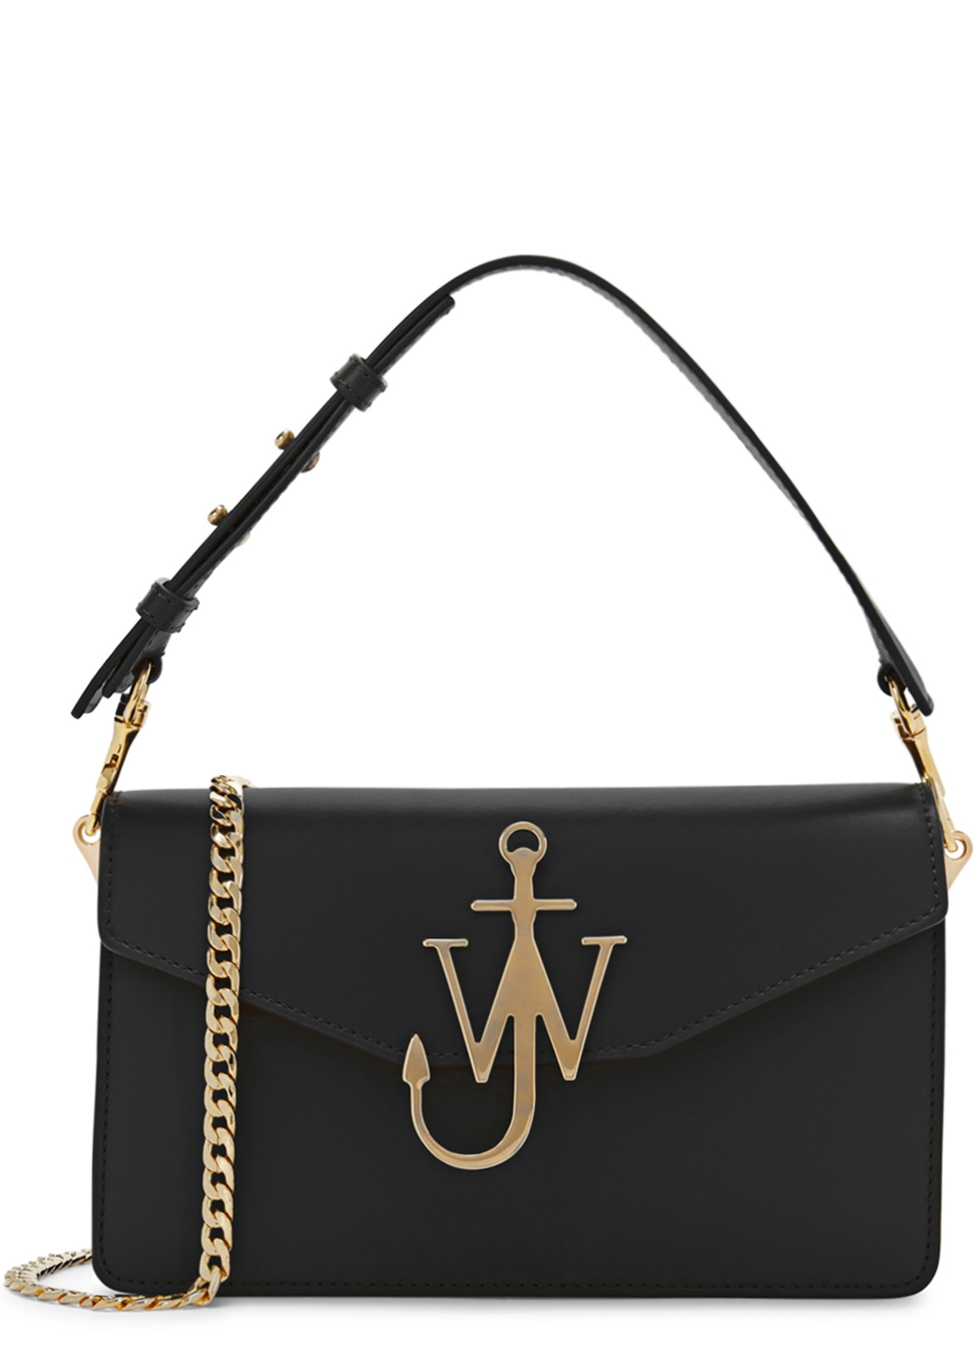 J.W.ANDERSON BLACK LOGO LEATHER SHOULDER BAG